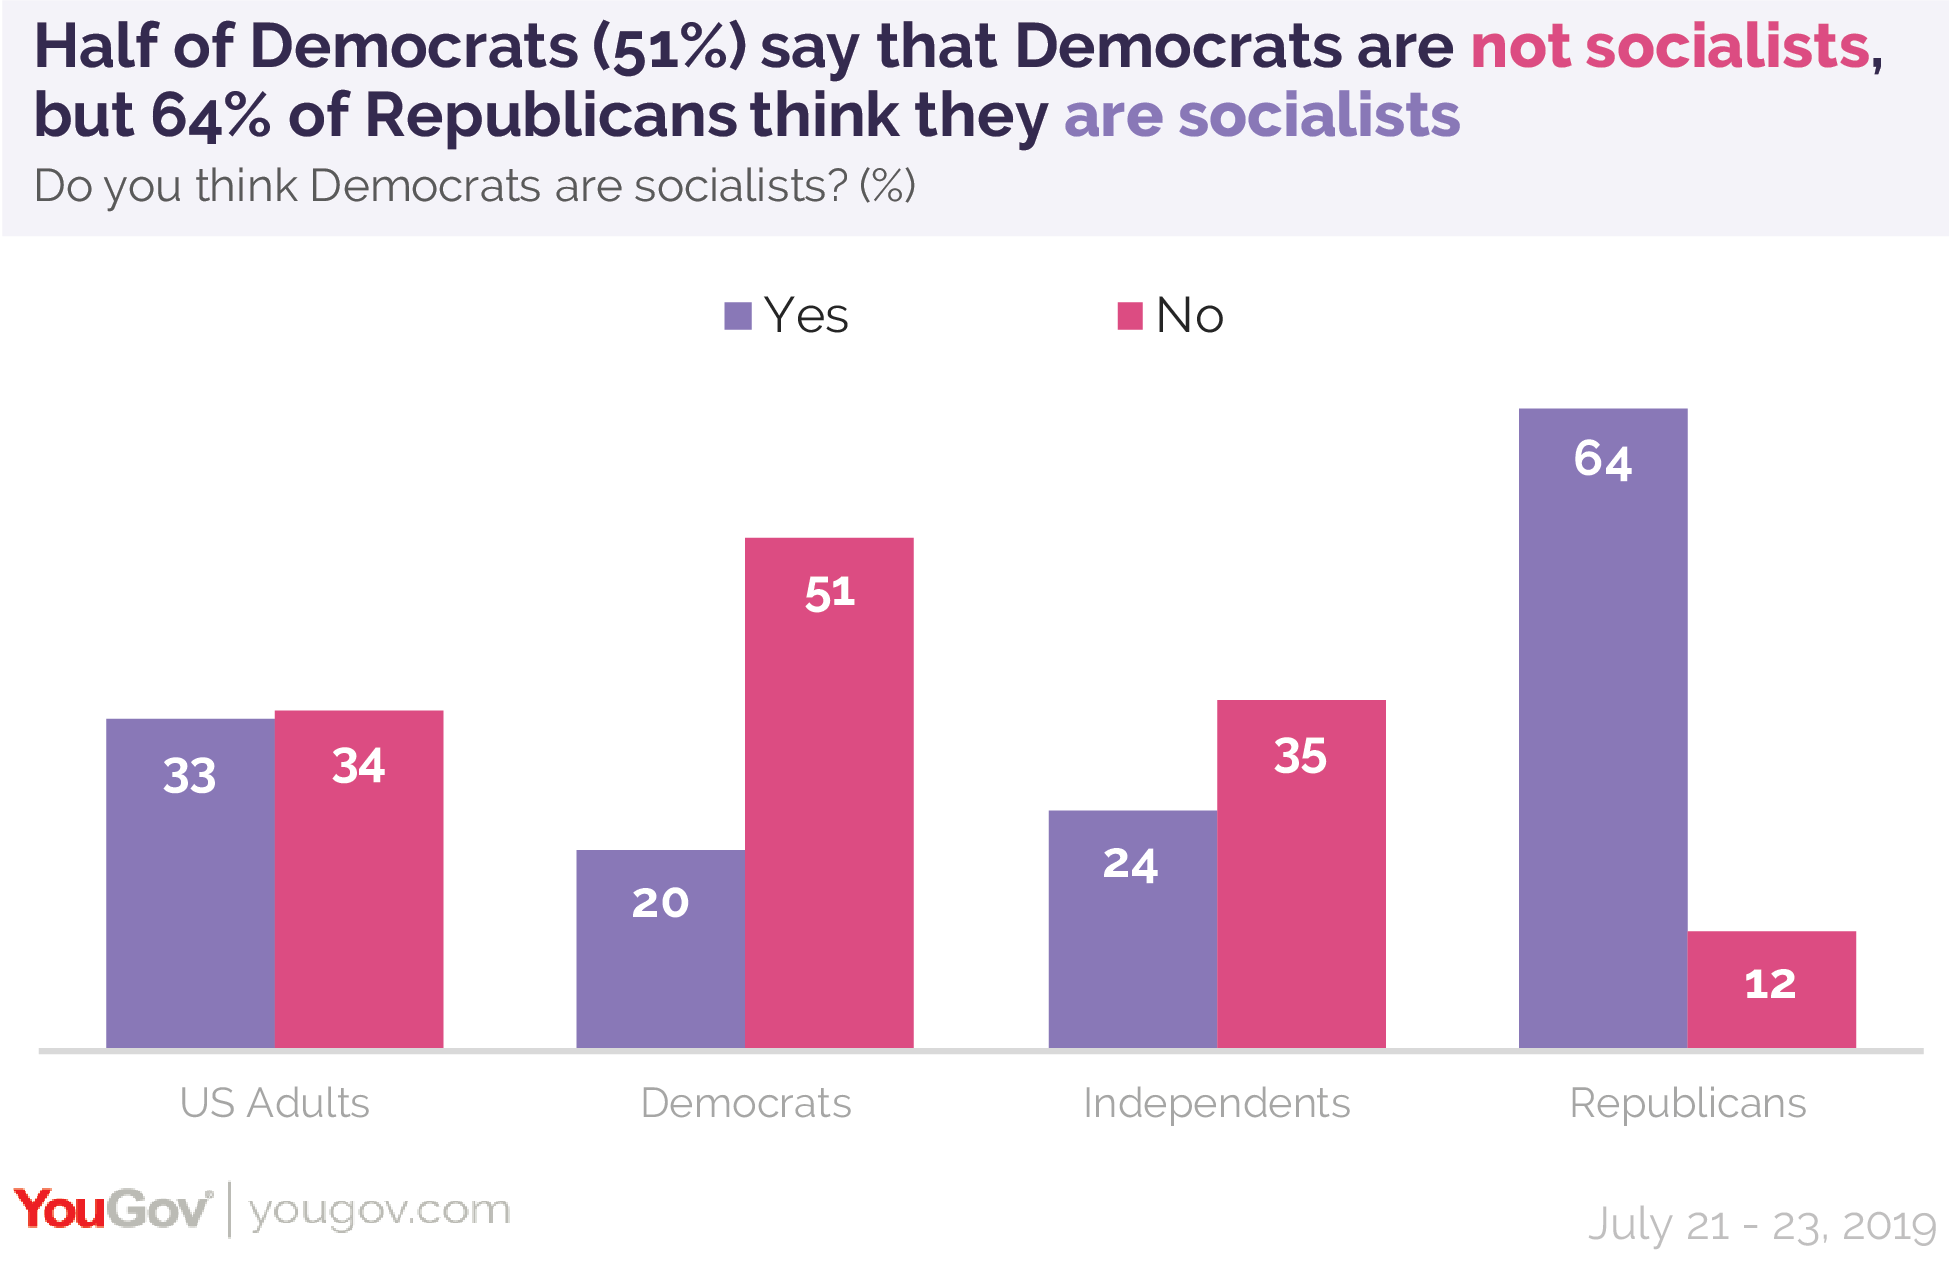 Half of Democrats say that Democrats are not socialists, but 64% of Republicans think they are socialists